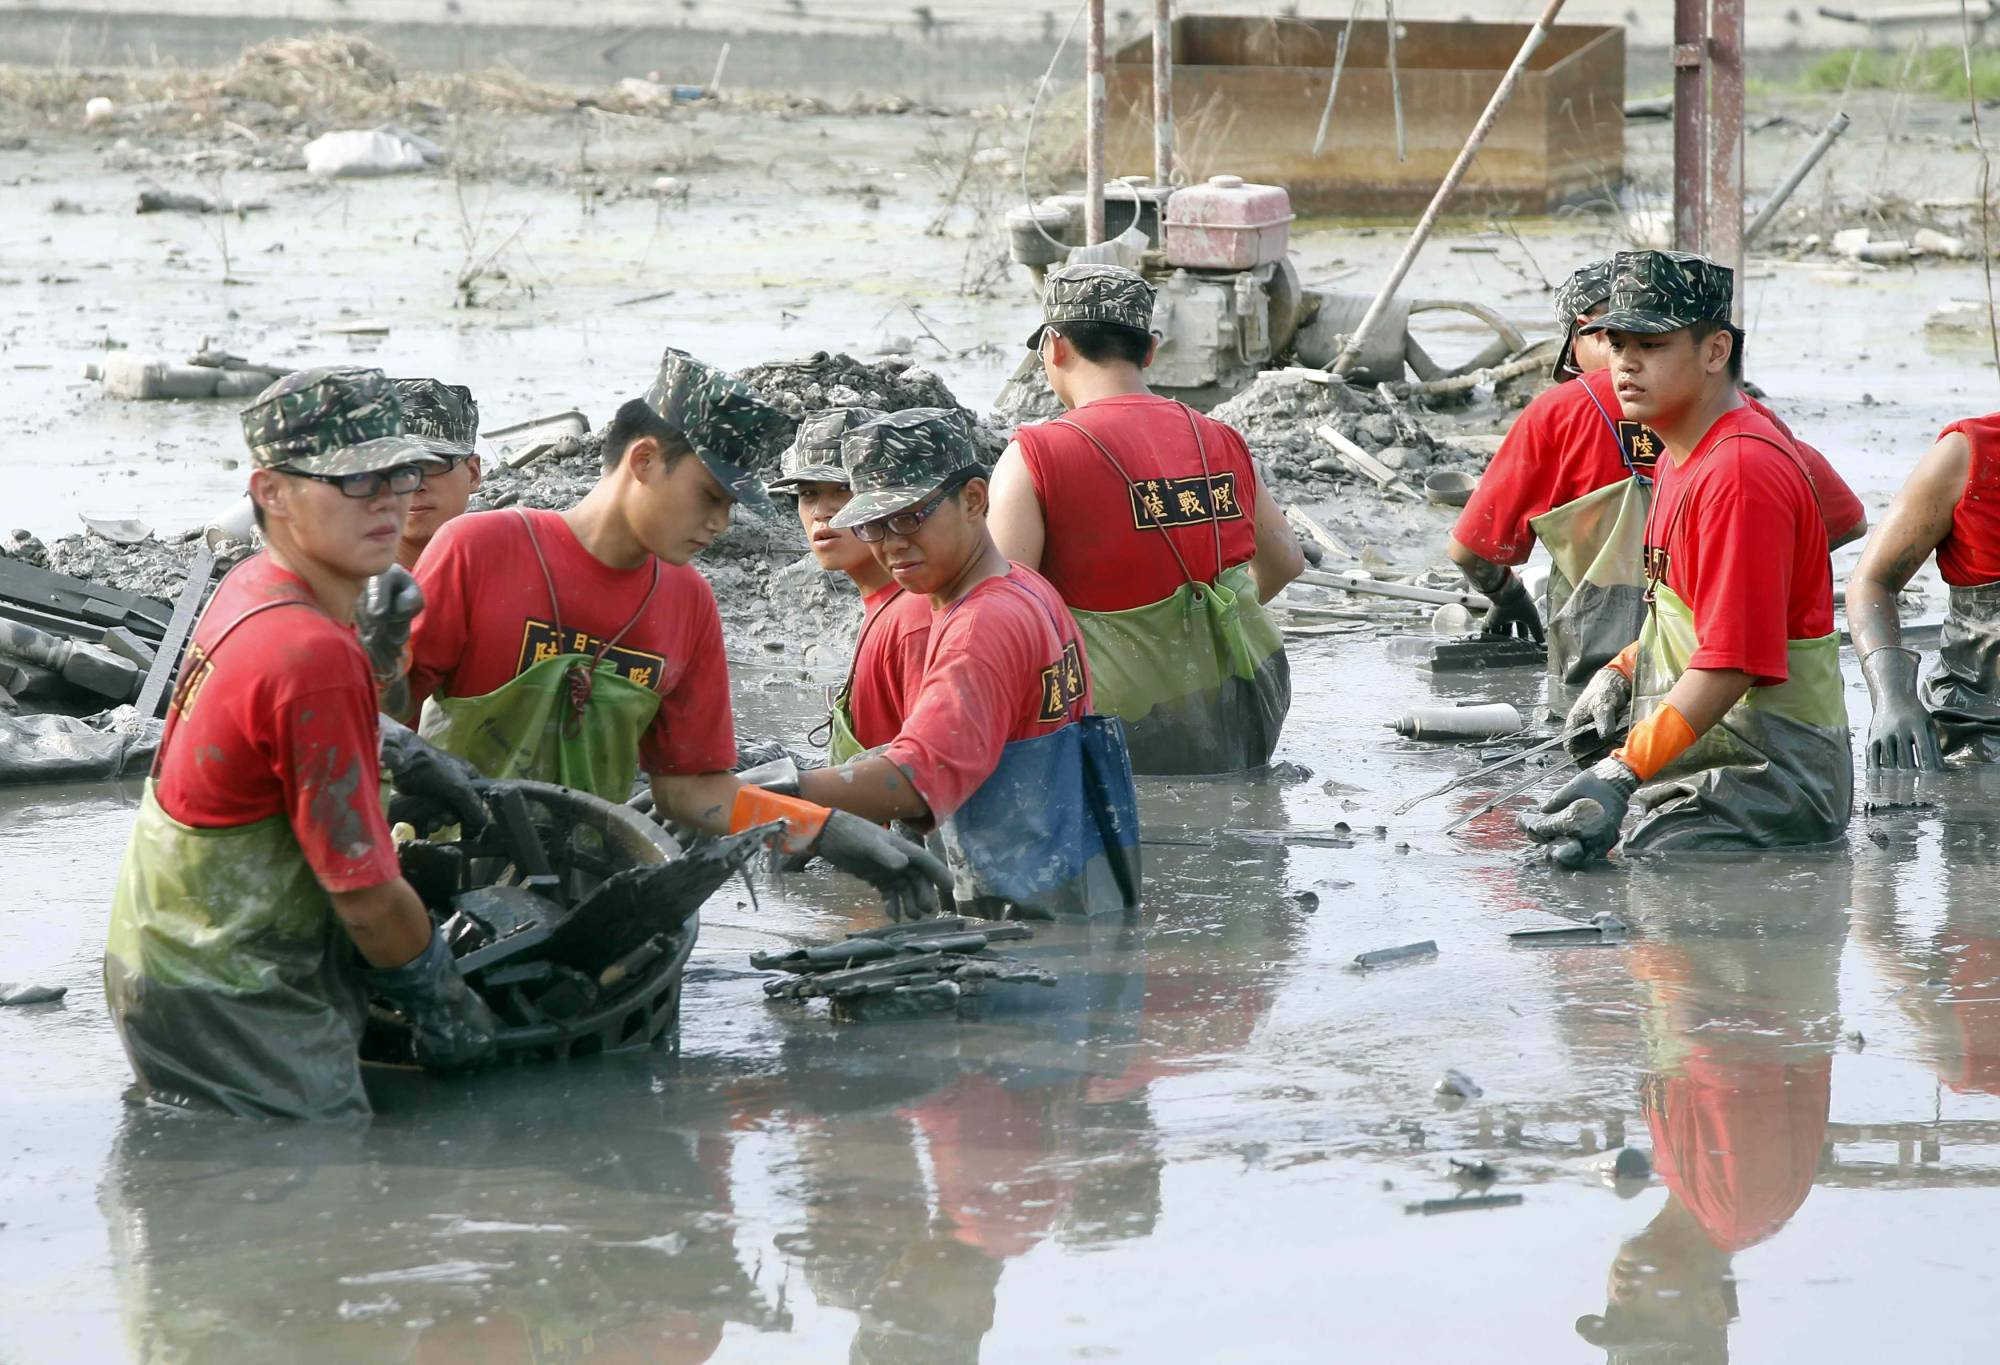 Soldiers pick up rubbish and items on a flooded street following Typhoon Morakot in Pingtung County, southern Taiwan, on August 23, 2009. | TAIWAN MILITARY NEWS AGENCY / VIA REUTERS